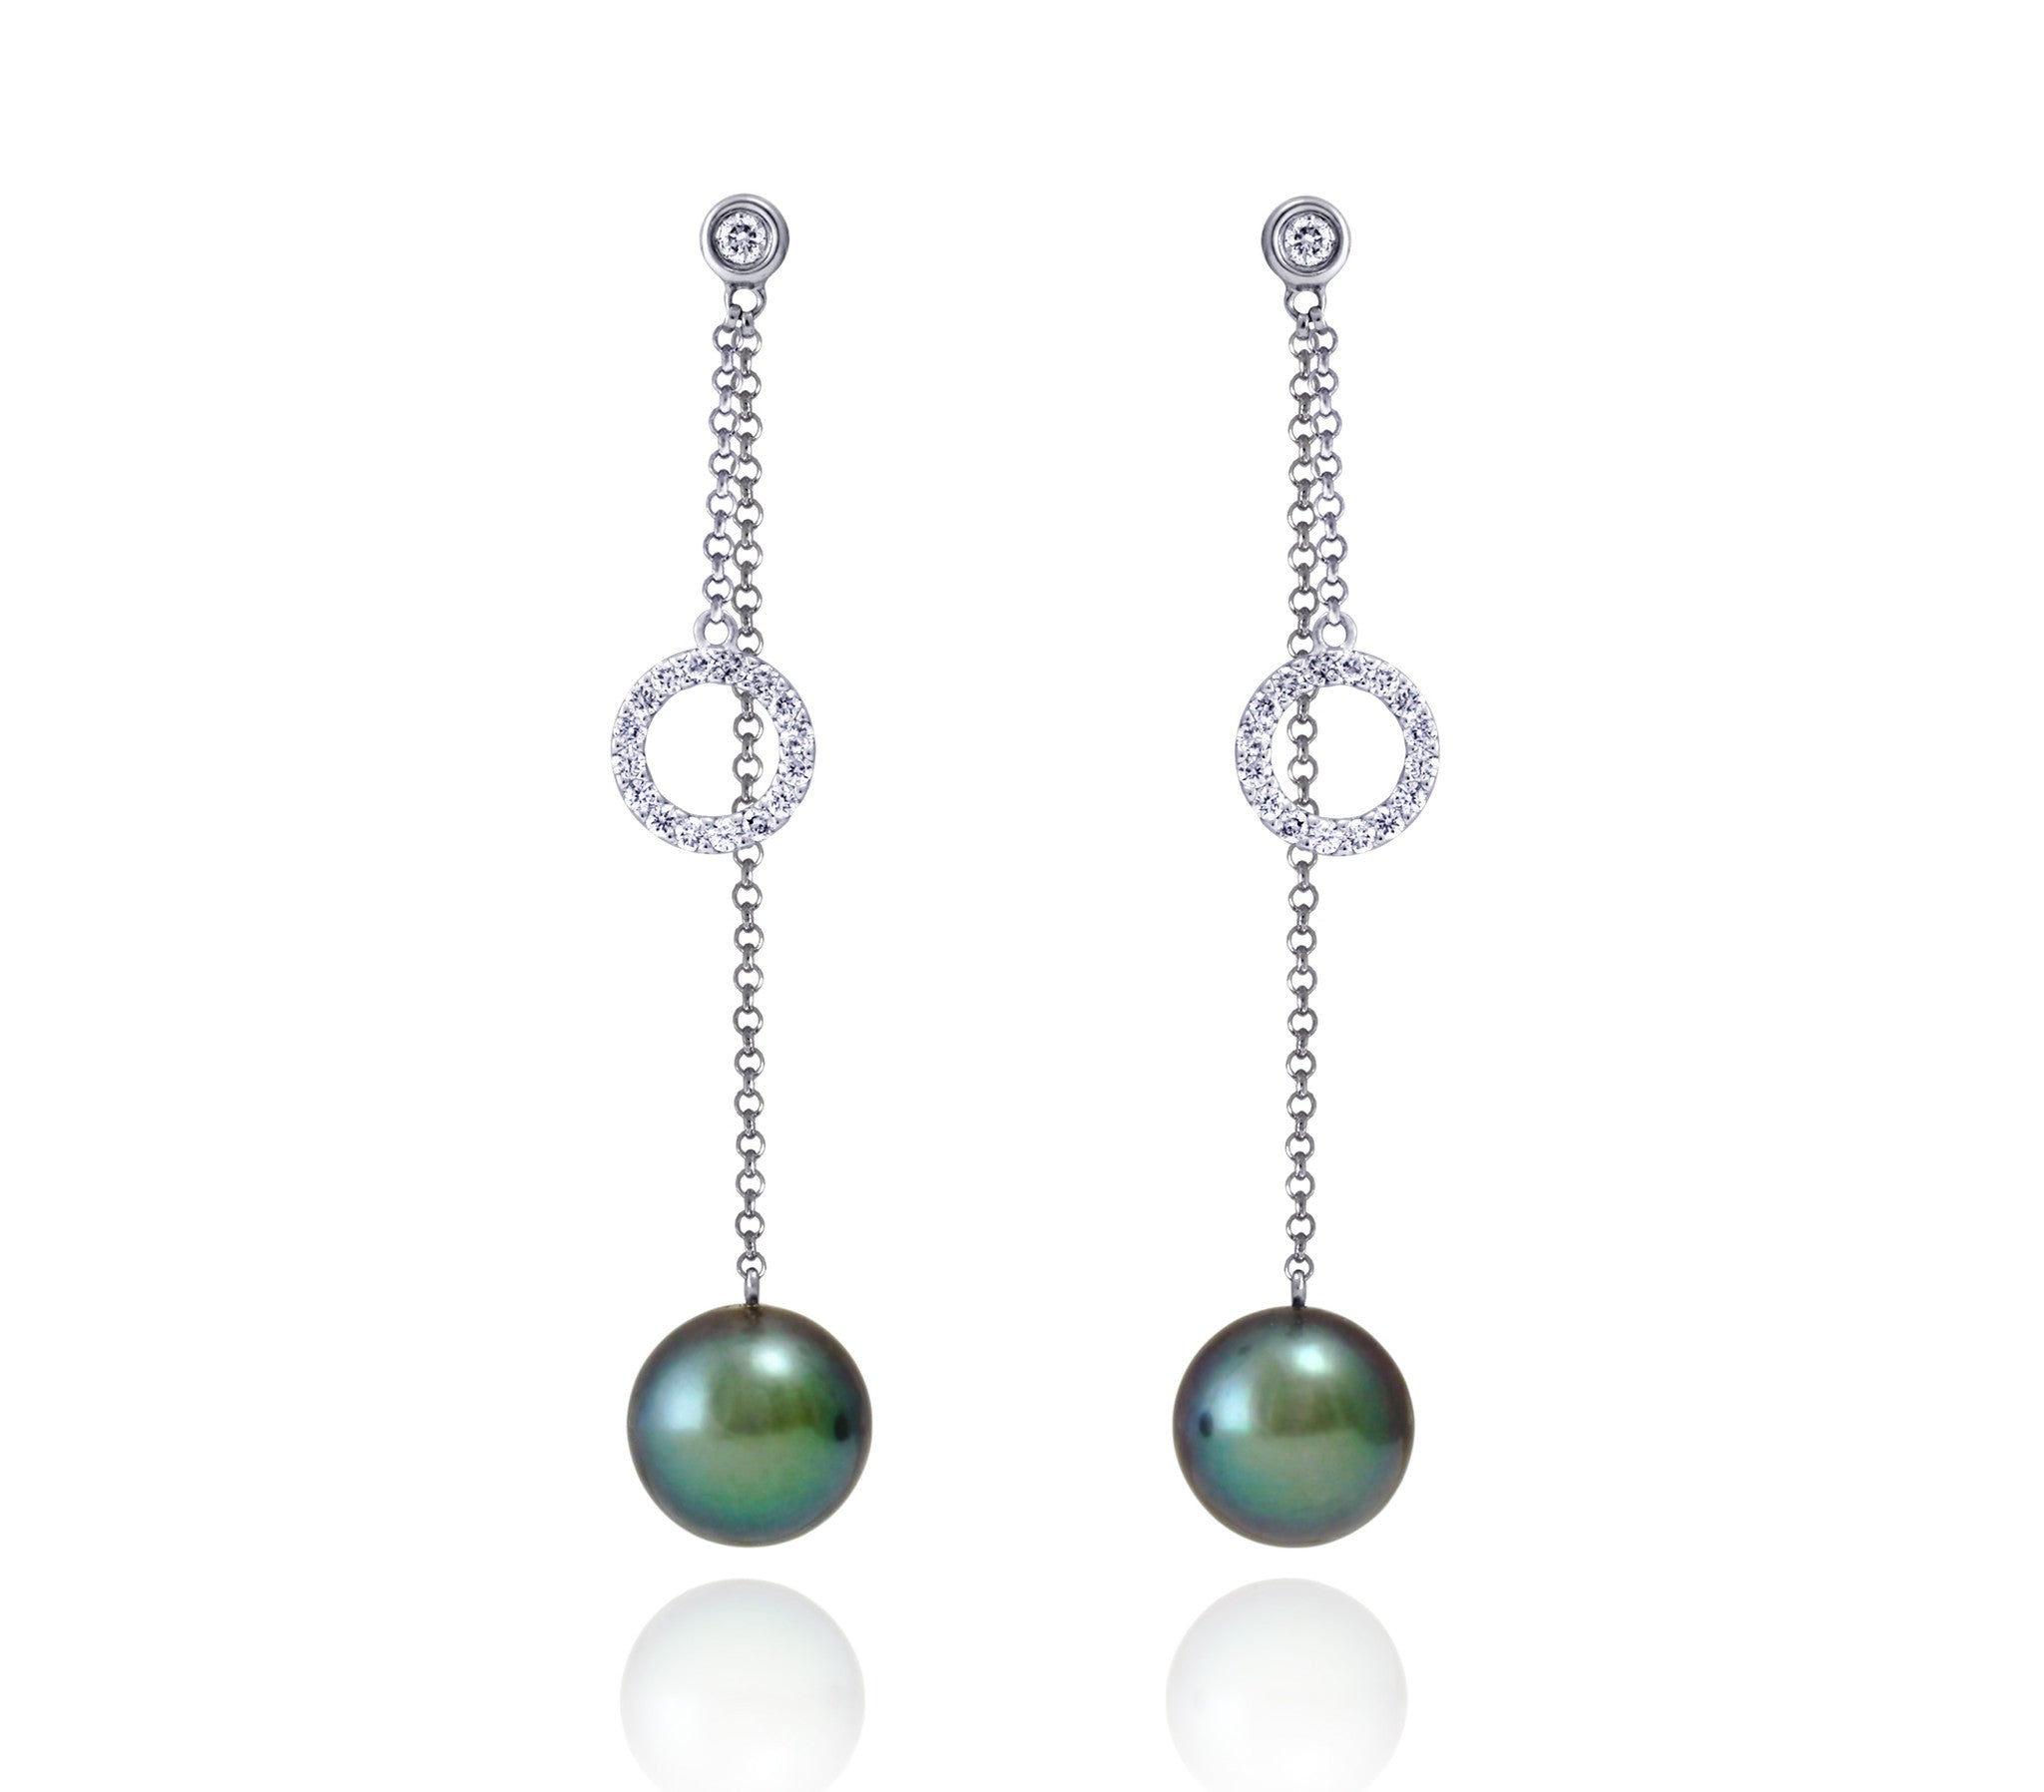 Tahitian pearl earrings 18k white gold with diamond - Circle of Life - EAWDPE00121